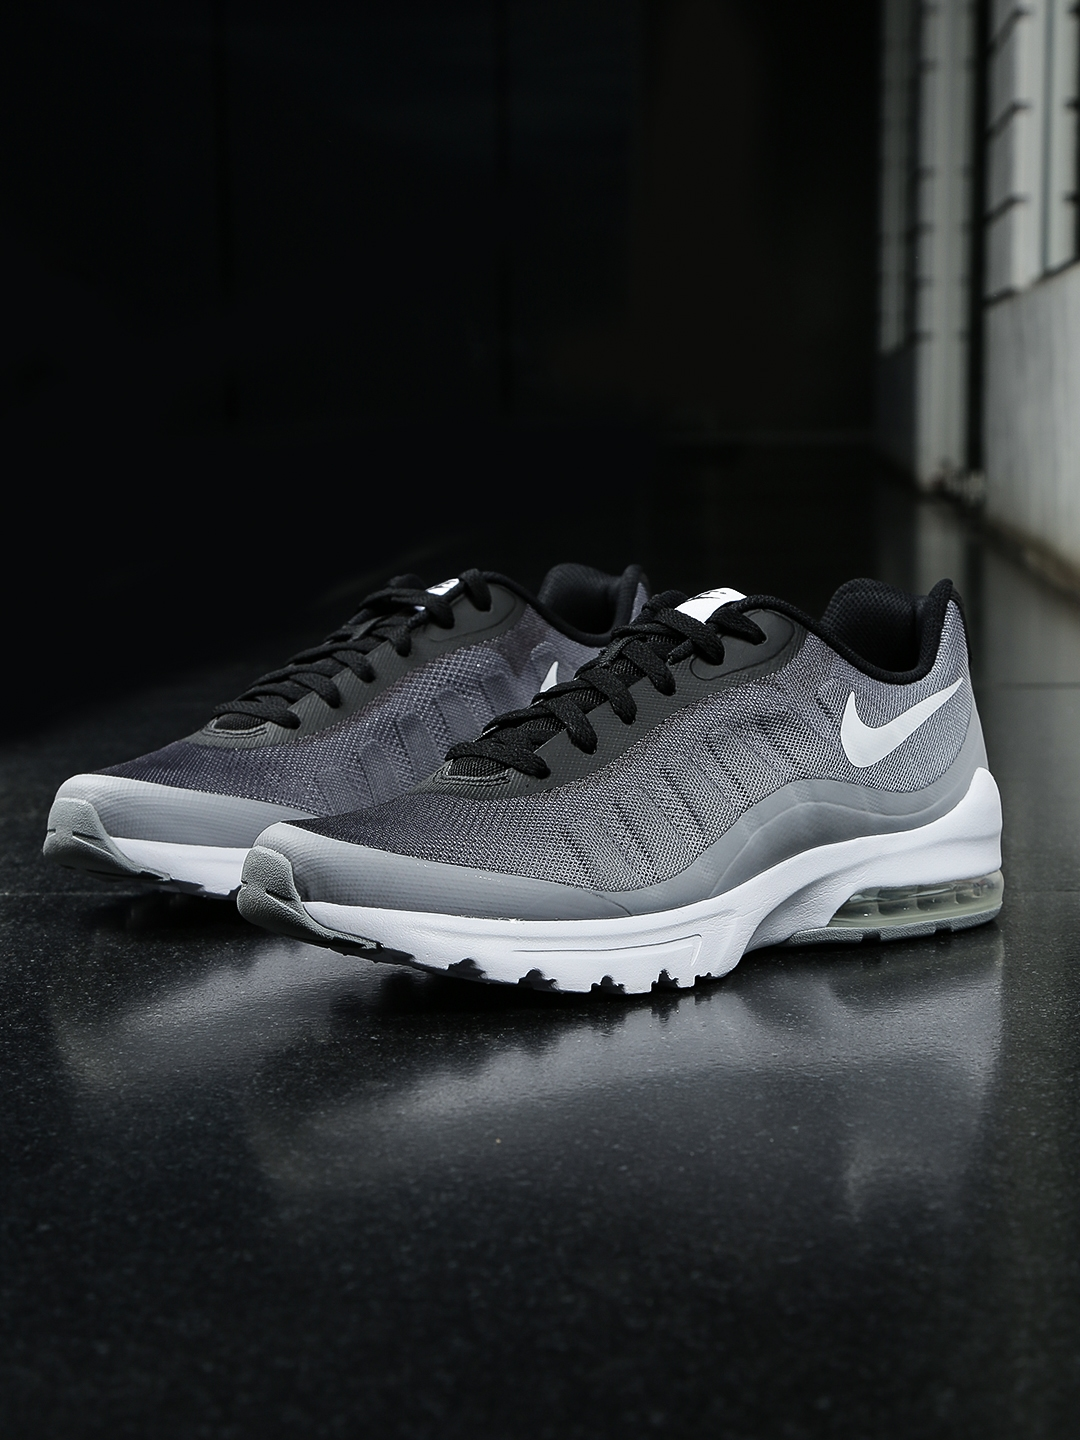 1780a7752 11508330679276-Nike -Men-Grey-AIR-MAX-INVIGOR-PRINT-Sneakers-7211508330679070-1.jpg